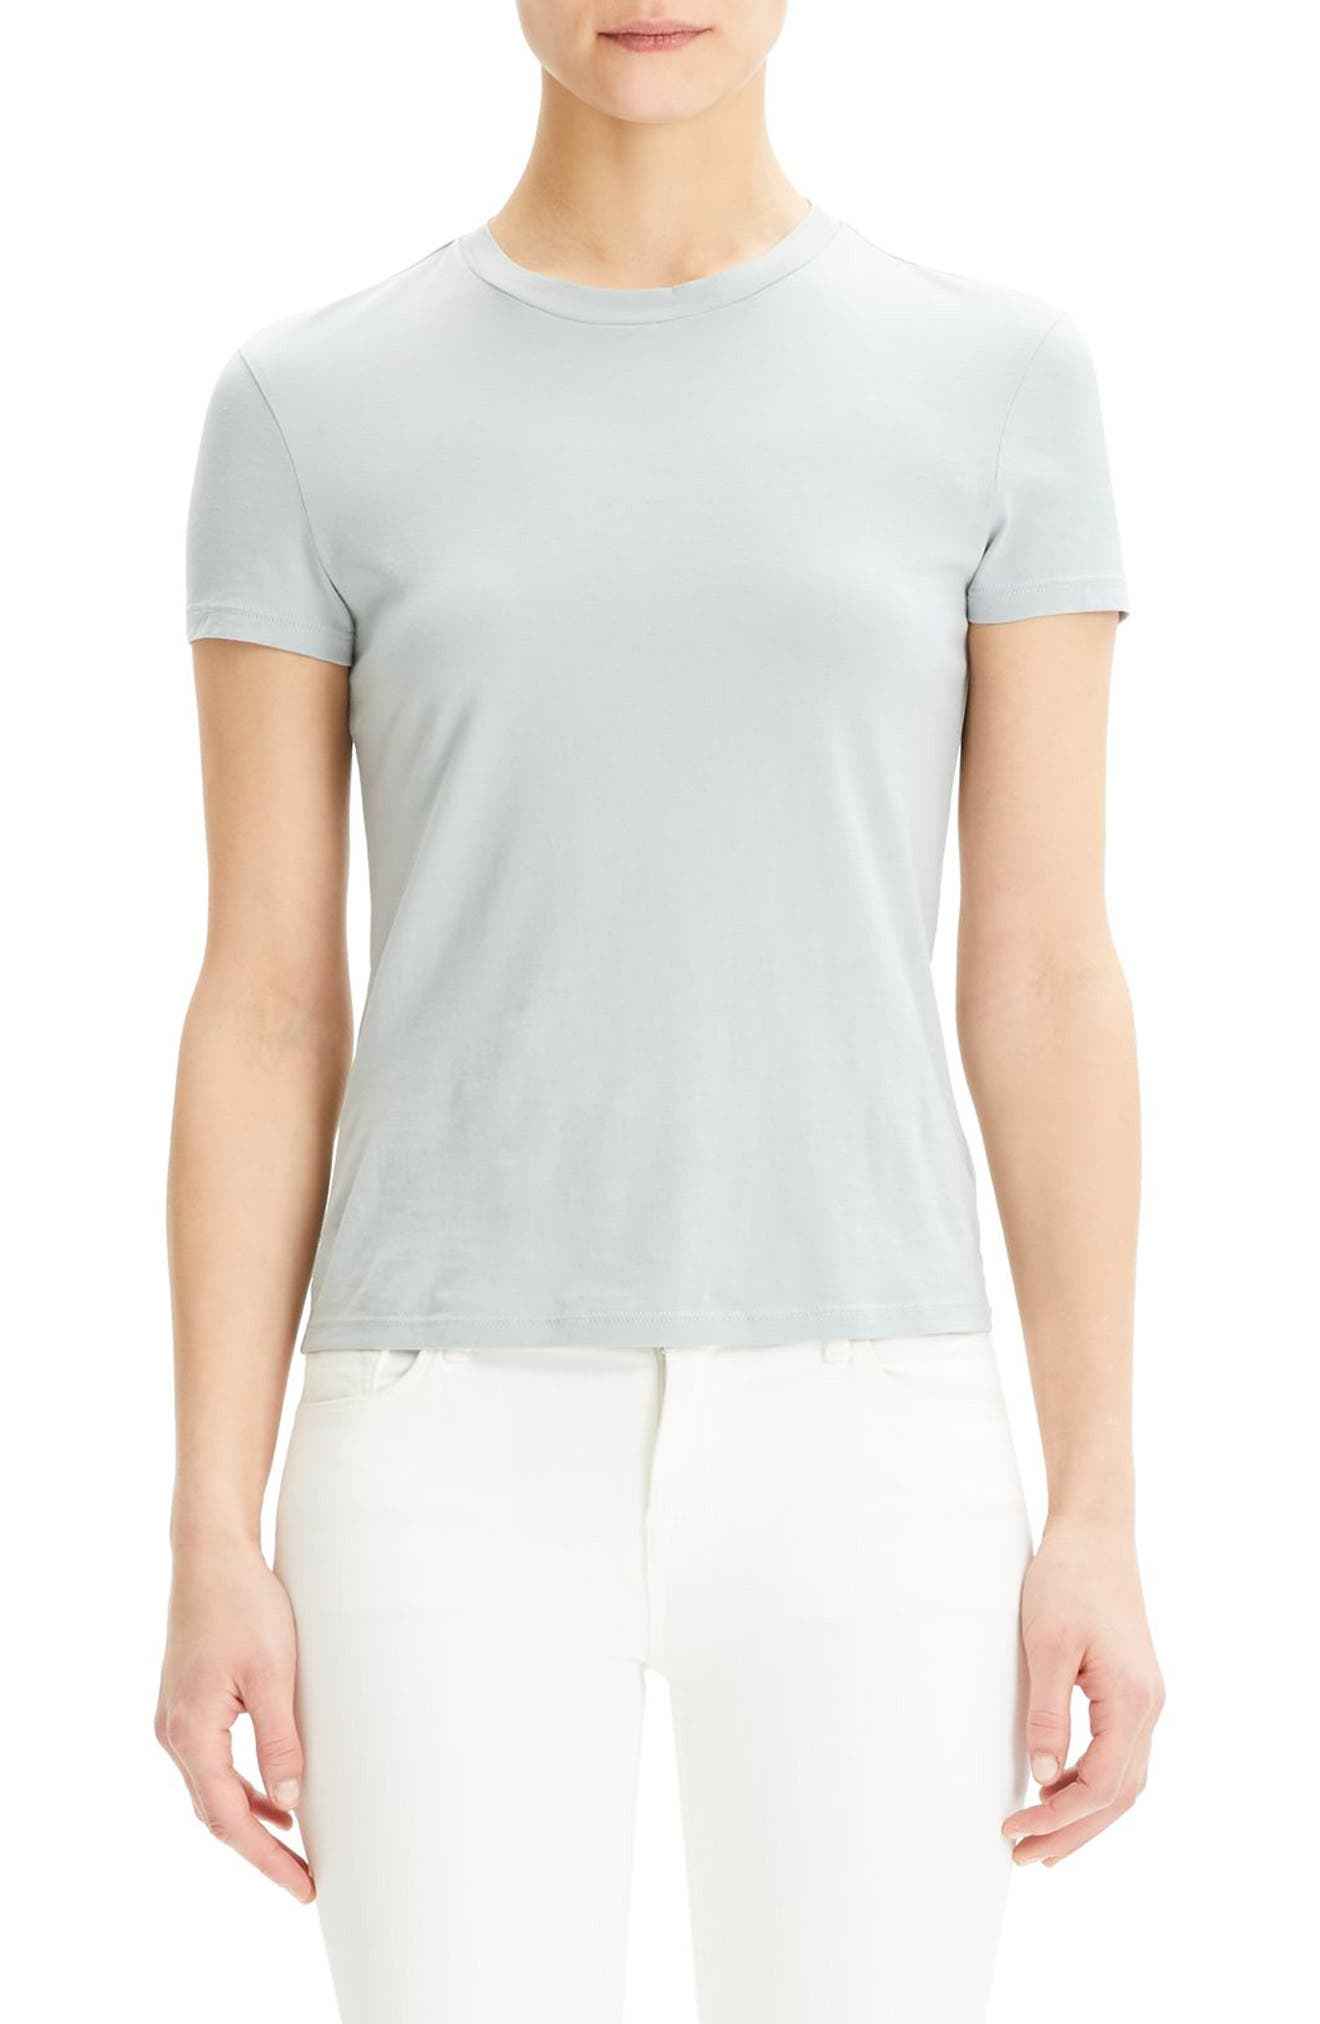 2cee9184 Women's Theory Tops | Nordstrom